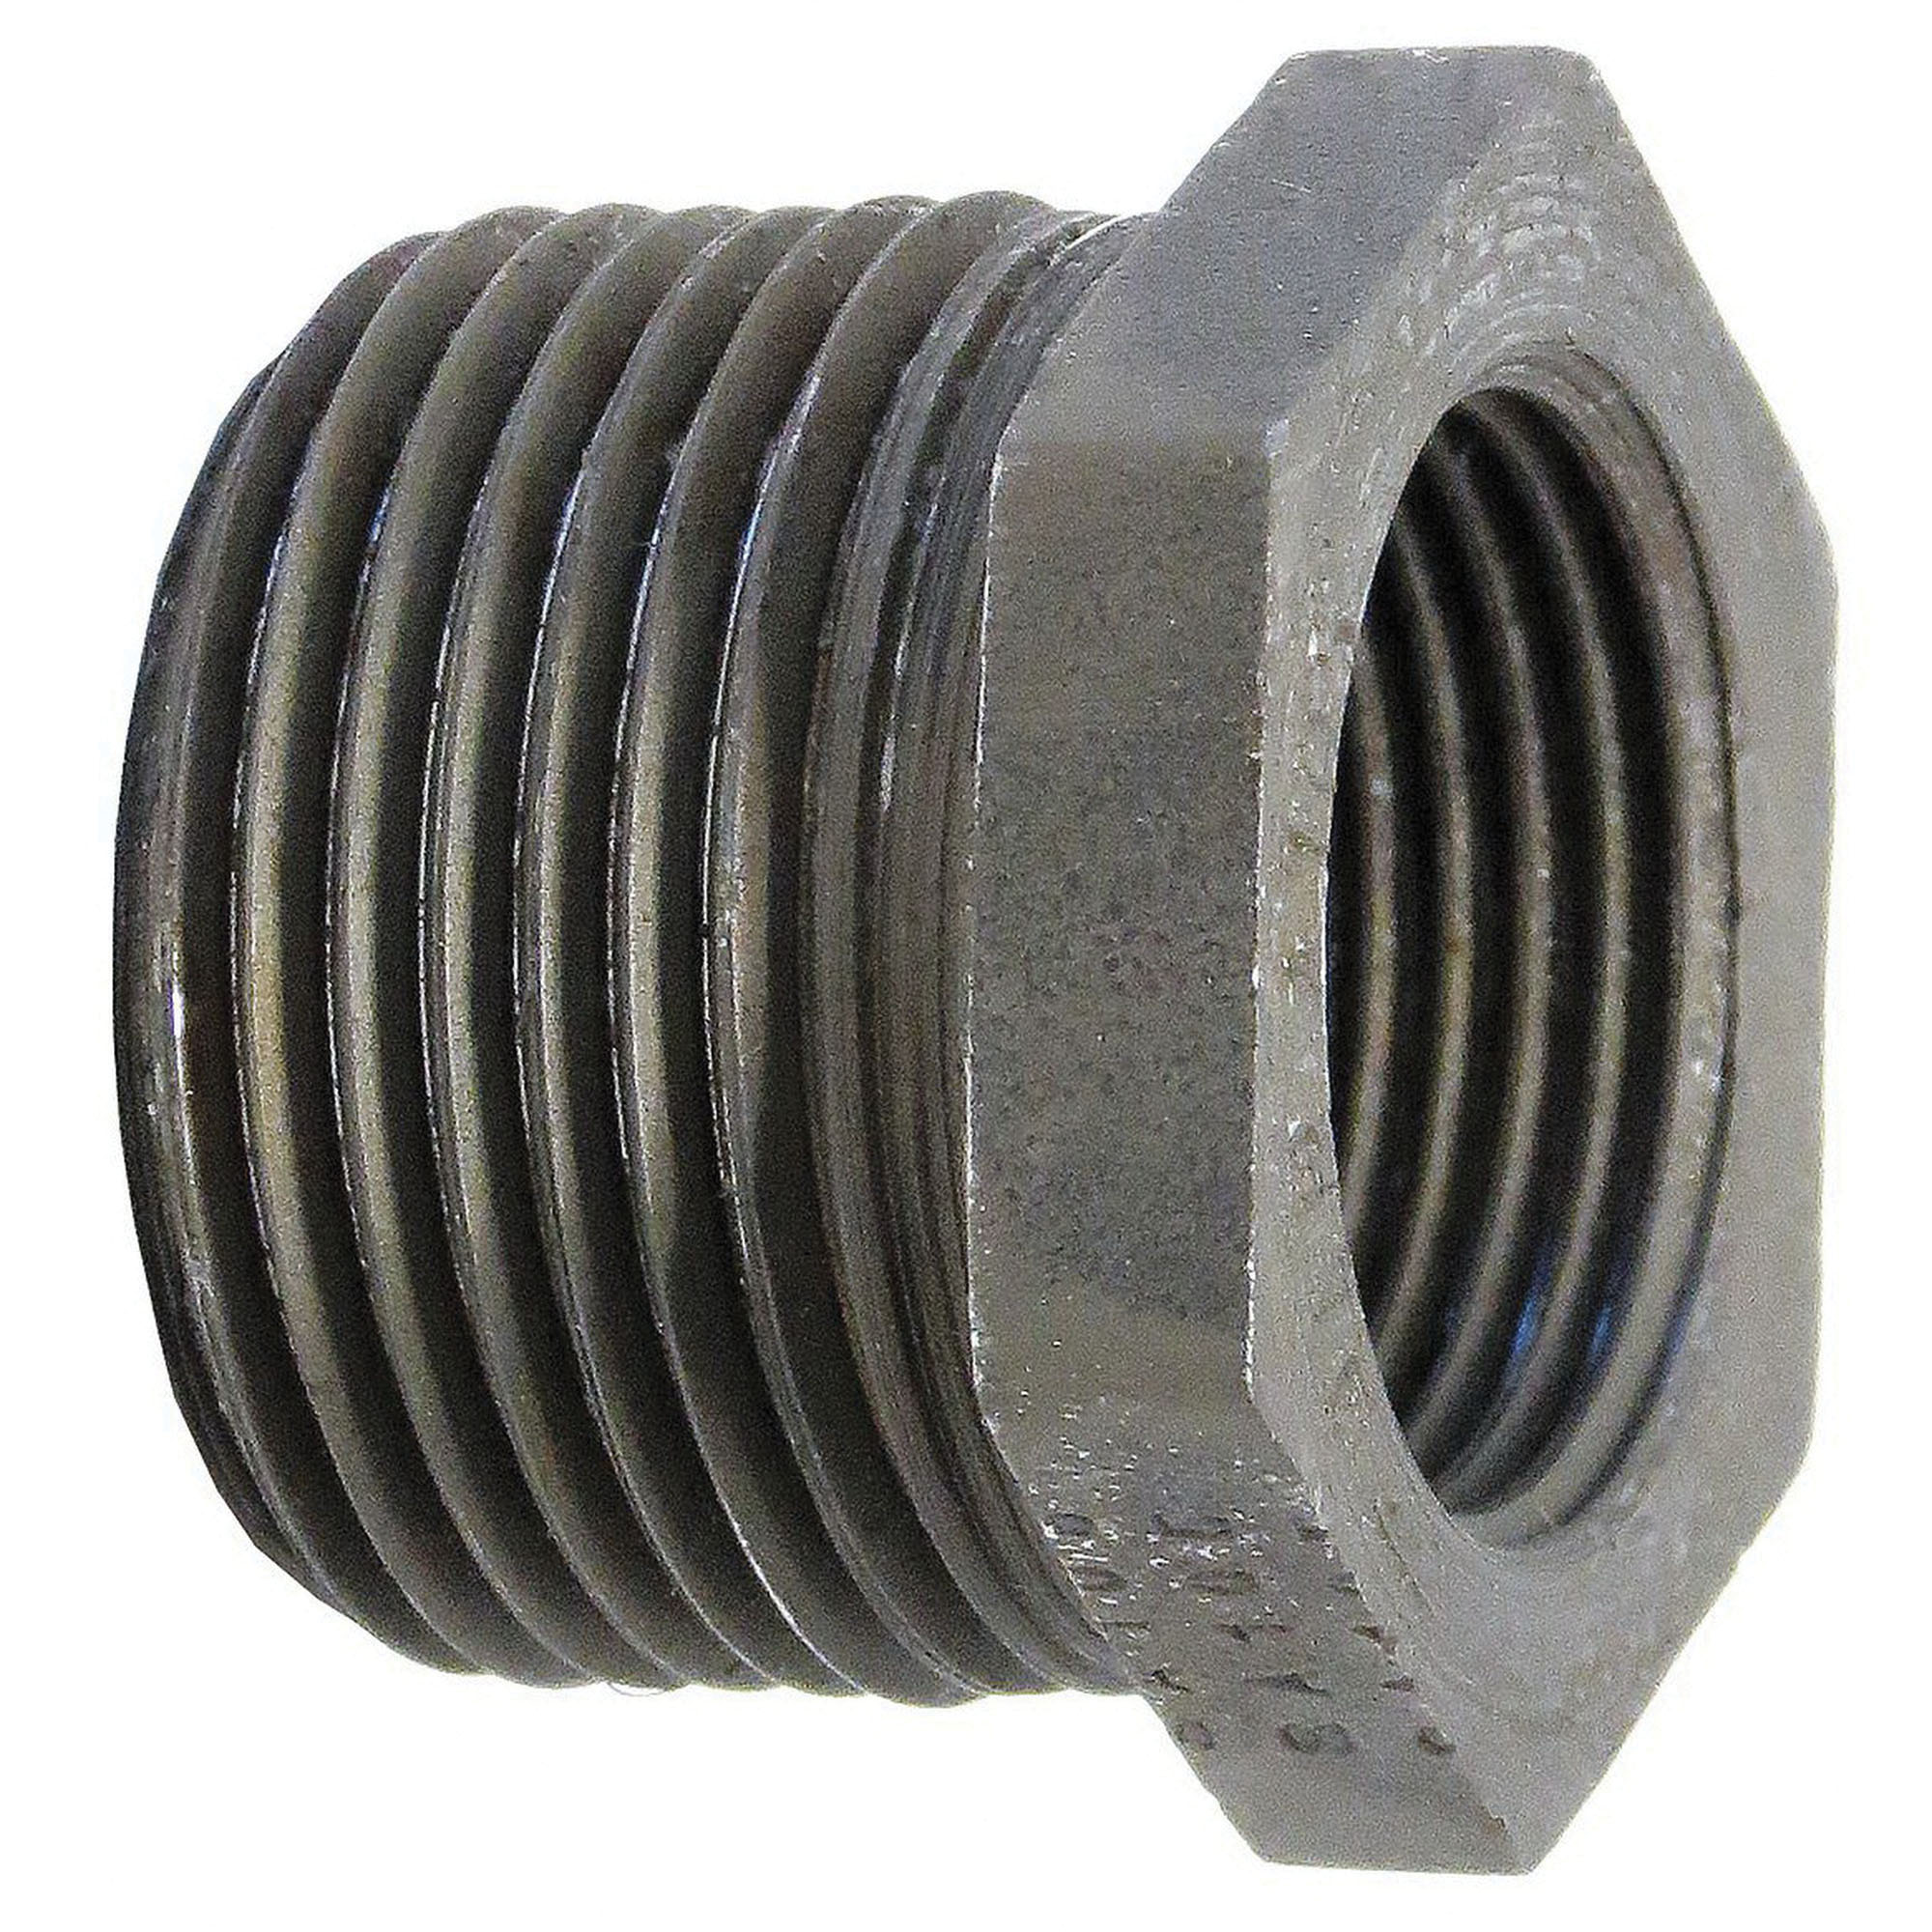 Steel Class 3000 Forged High Pressure Hex Bushing, 2 in x 1 in, MNPT x FNPT, Domestic, 12/CT